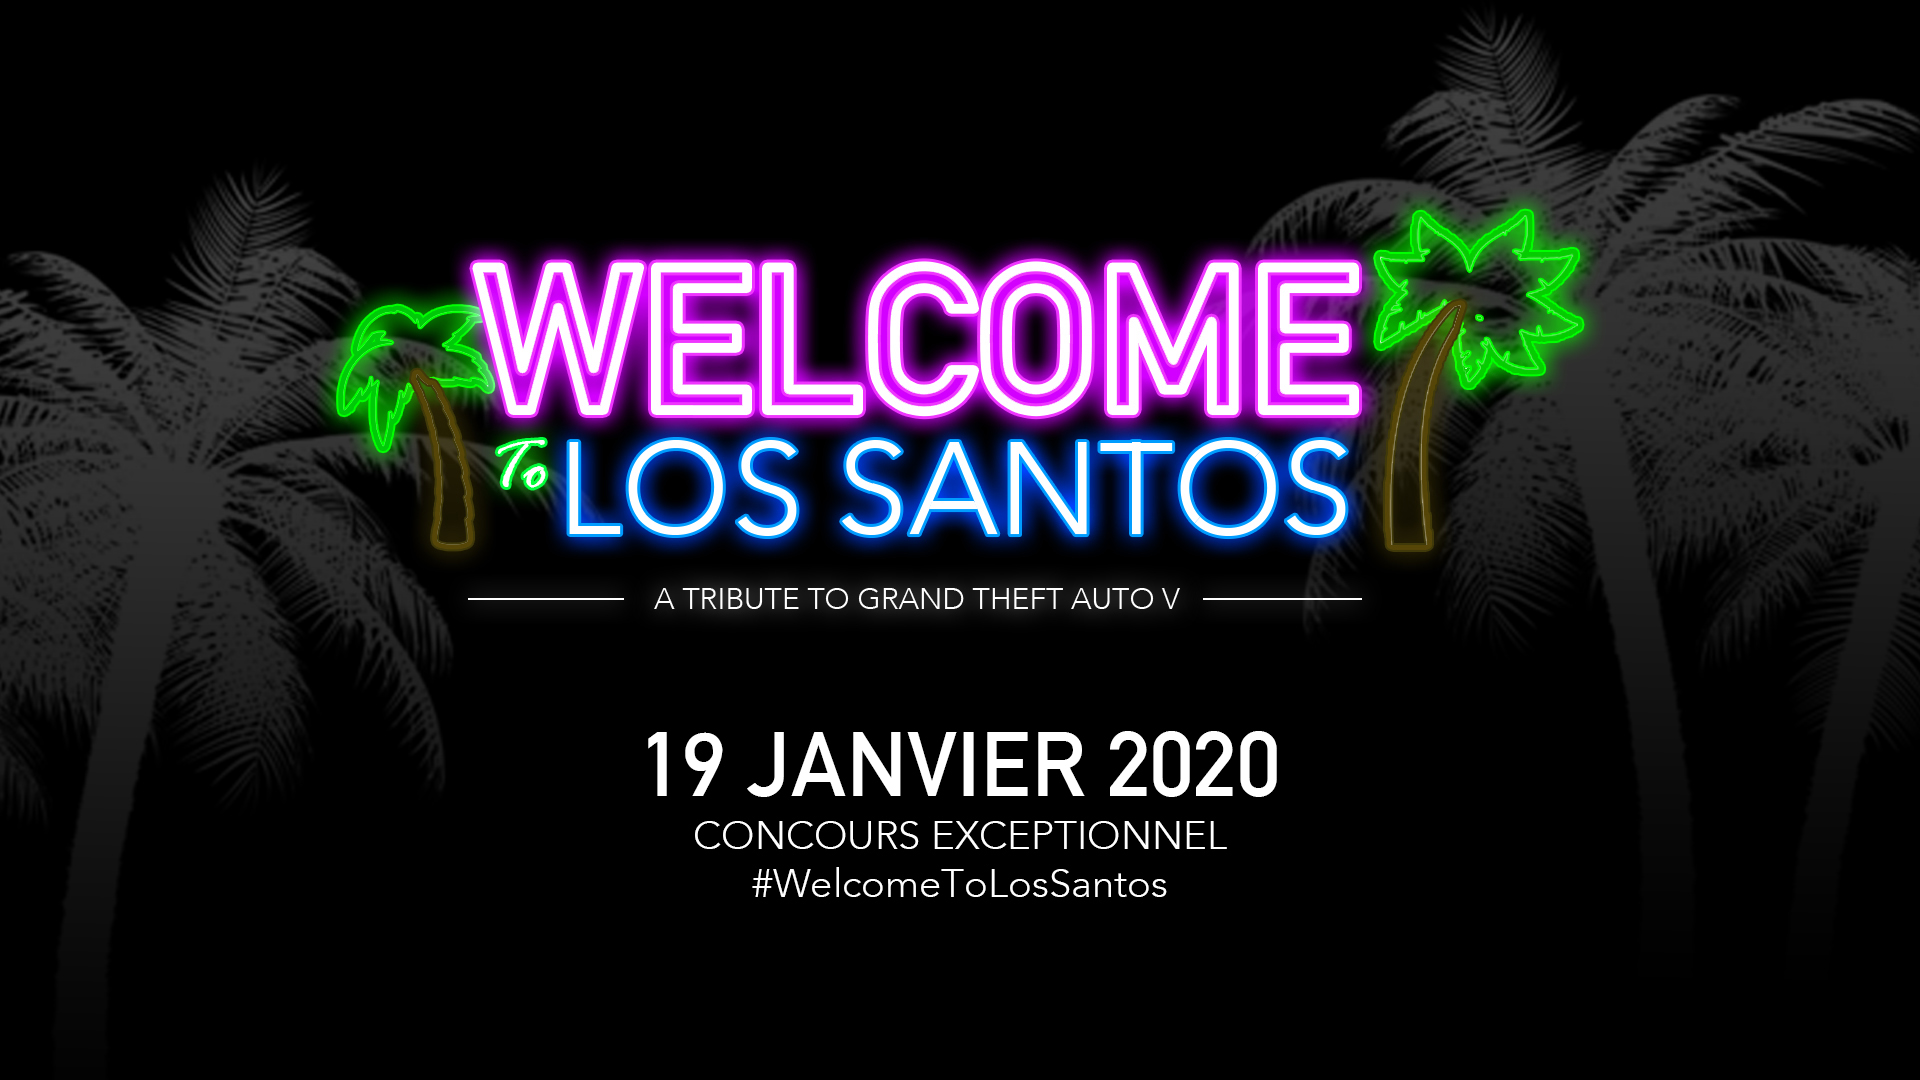 Welcome To Los Santos 19 Janvier 2020